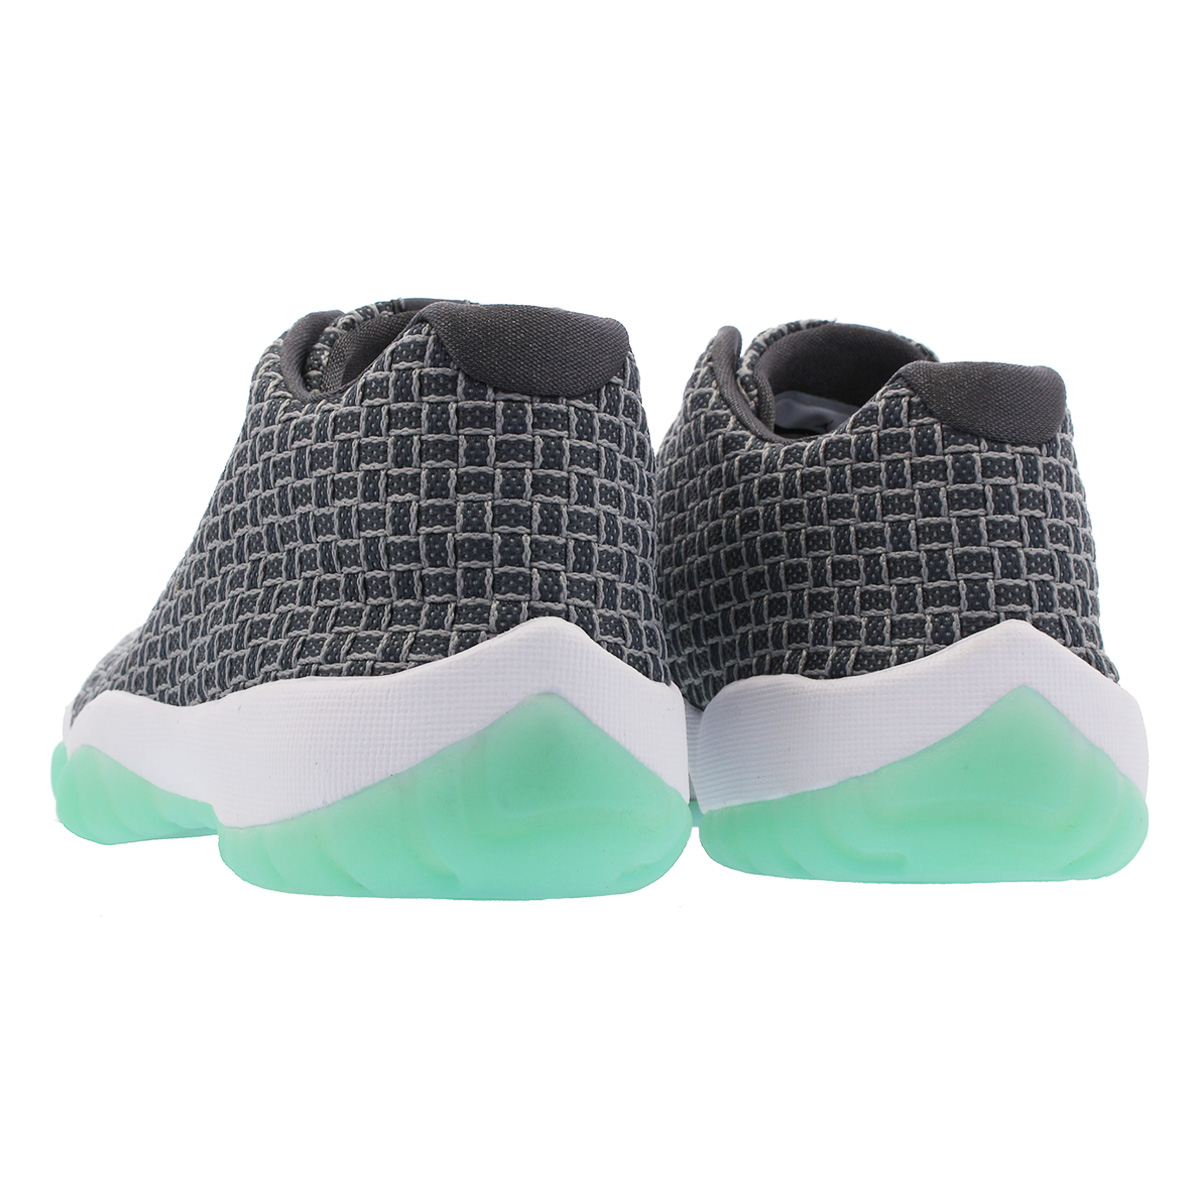 f7ef070c87d ... NIKE AIR JORDAN FUTURE LOW Nike Air Jordan future low WOLF GREY/EMERALD  RISE/ ...